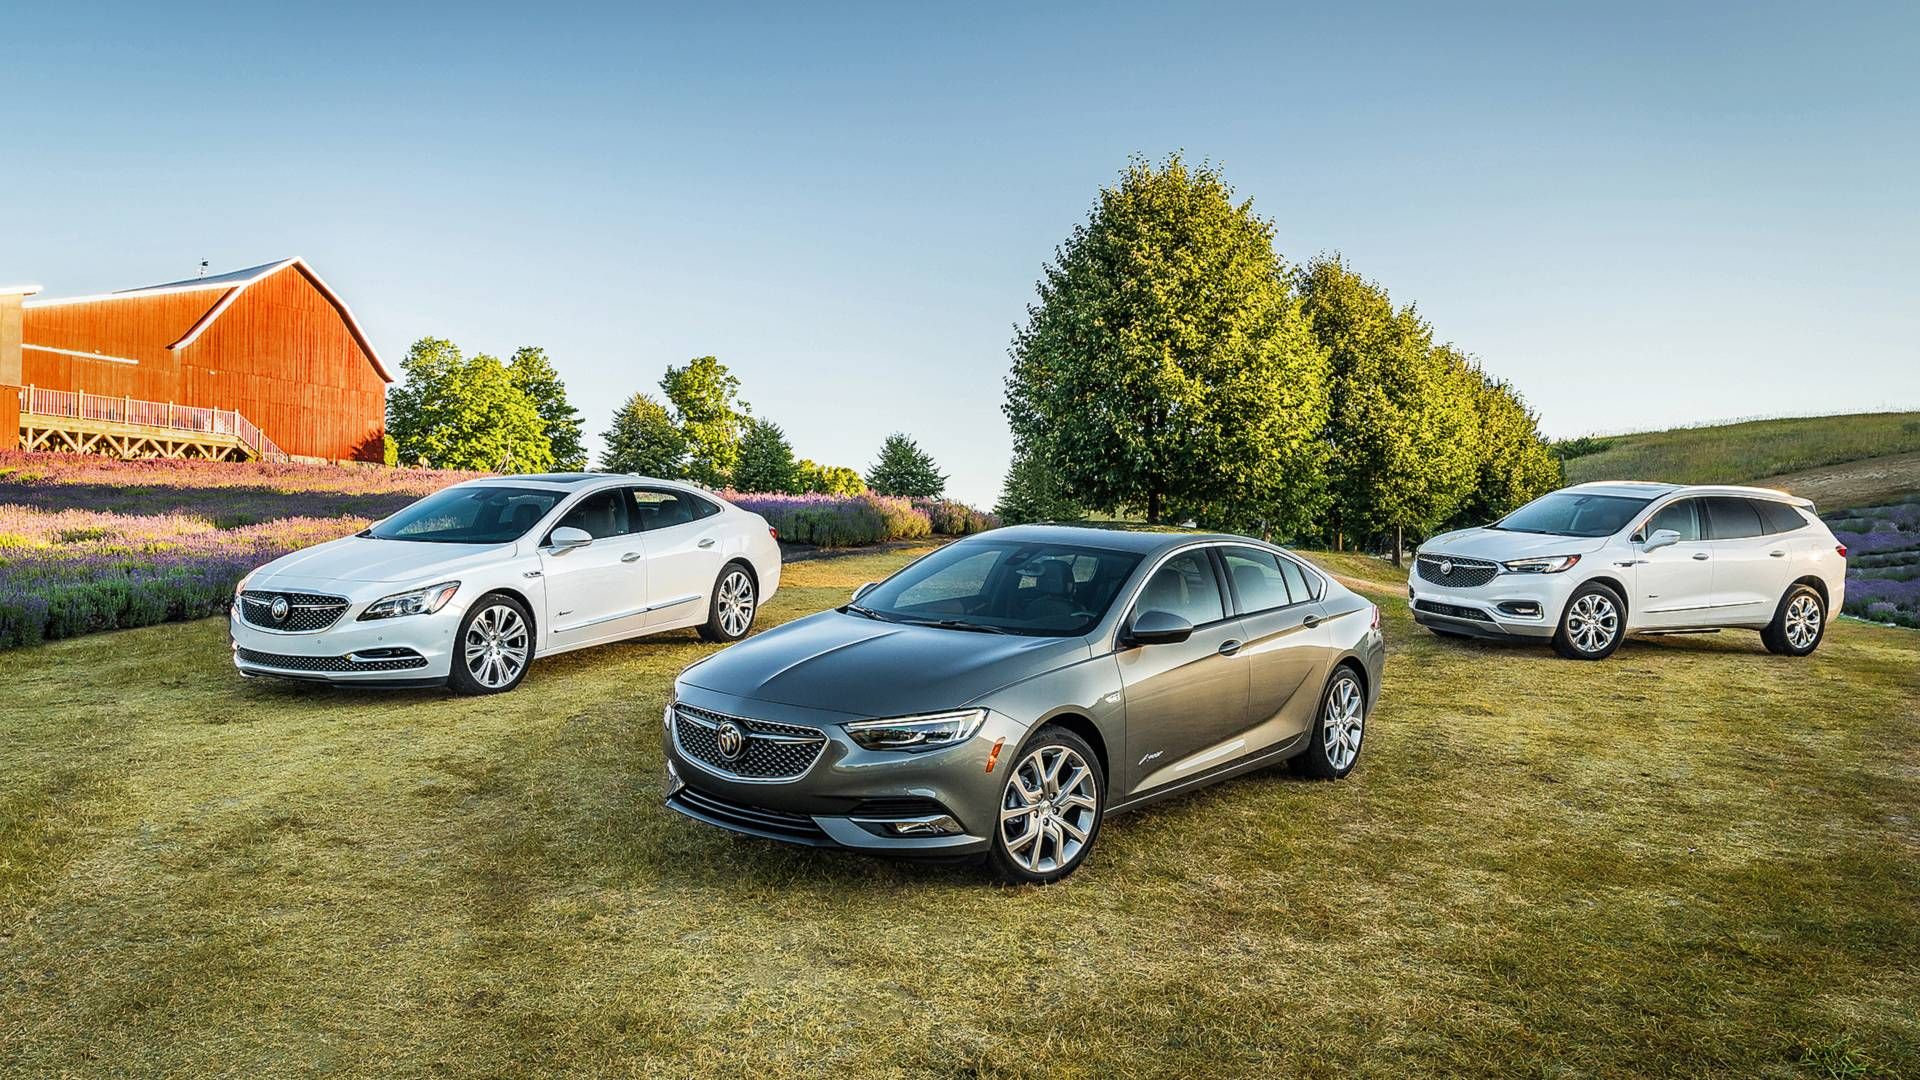 2019 Buick Regal Avenir Comes With Fwd Entry Level Engine